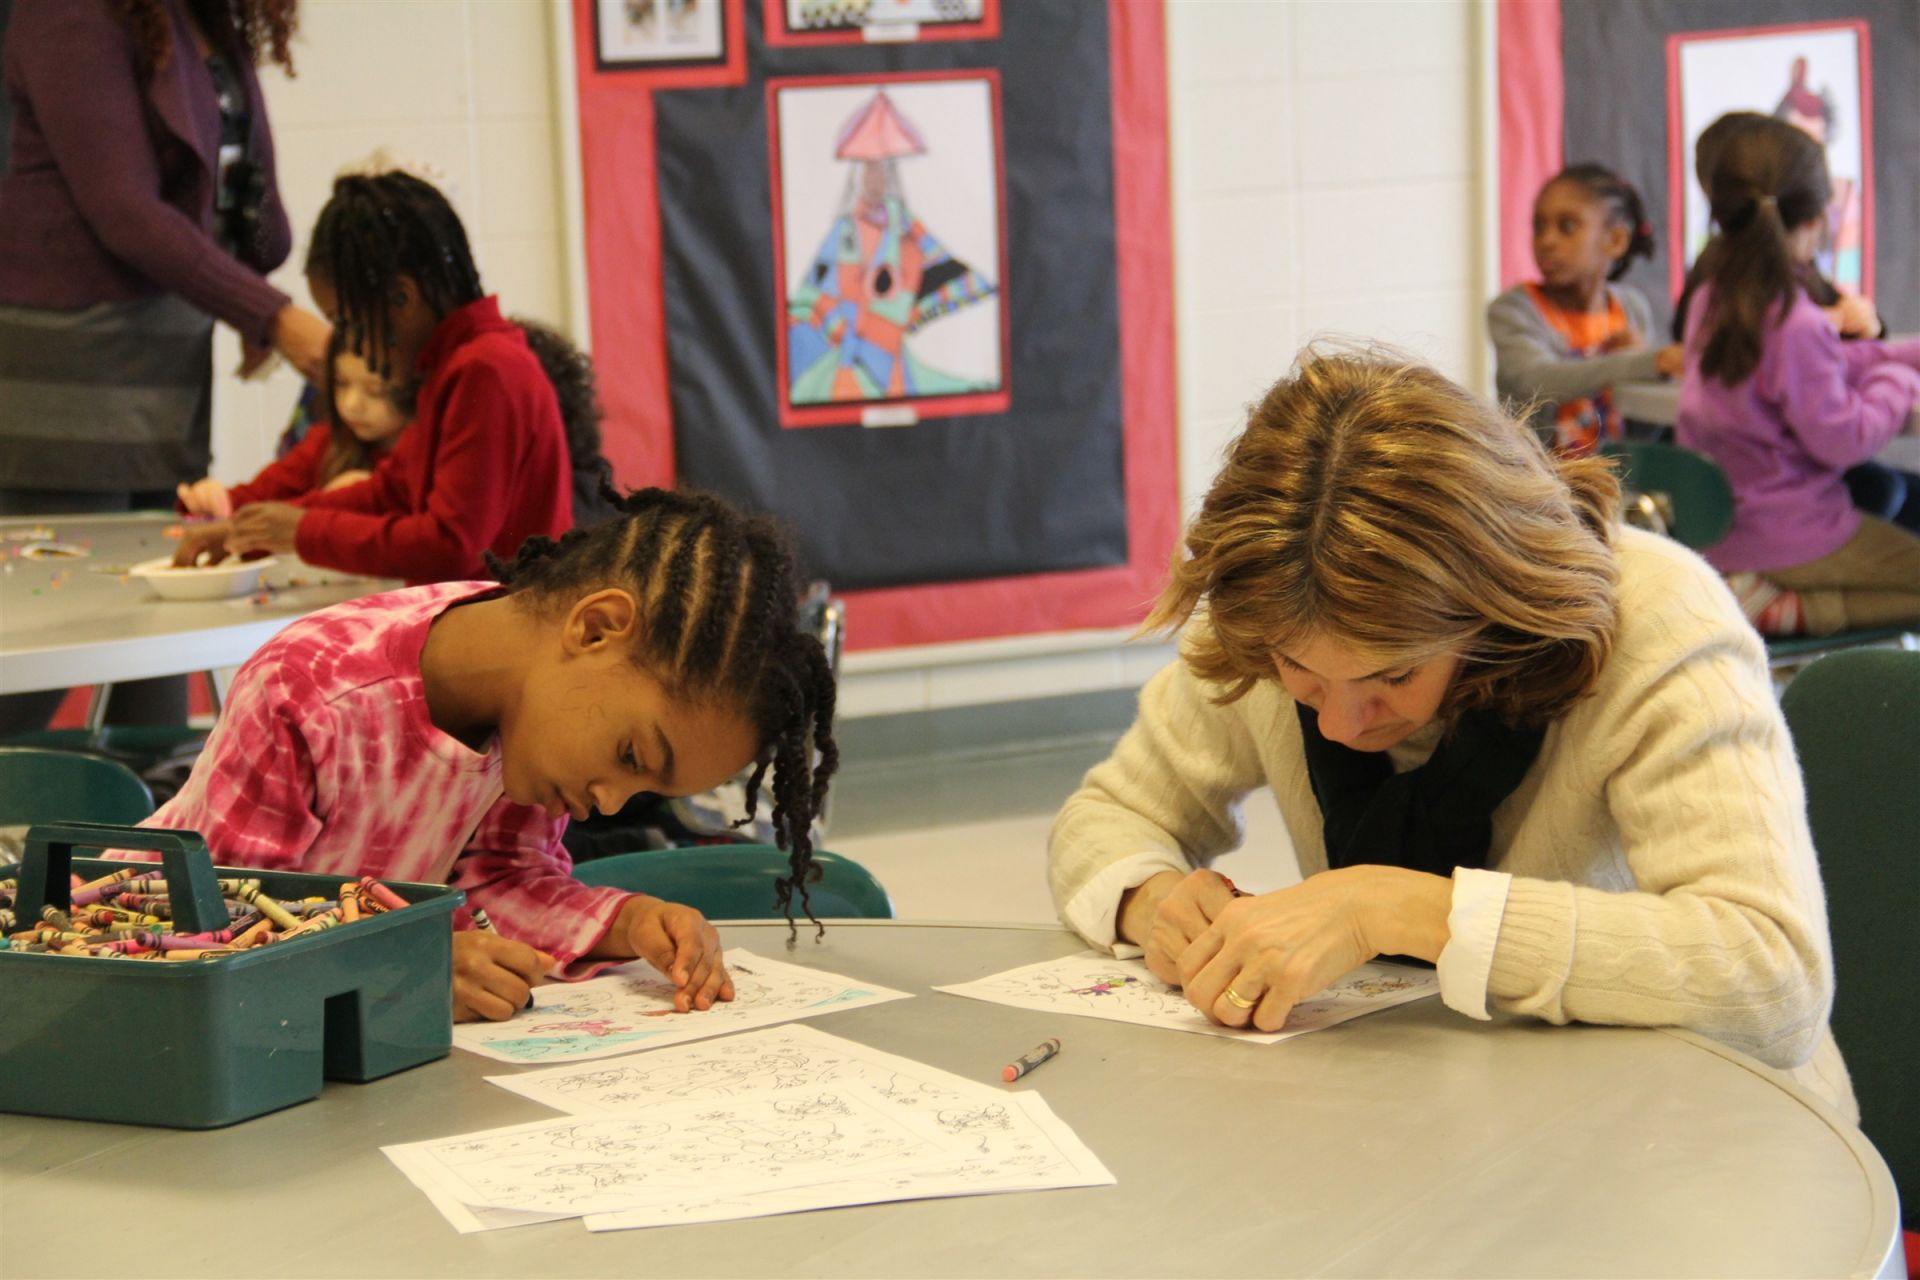 ABC instructors provide structured extended day activities for students.